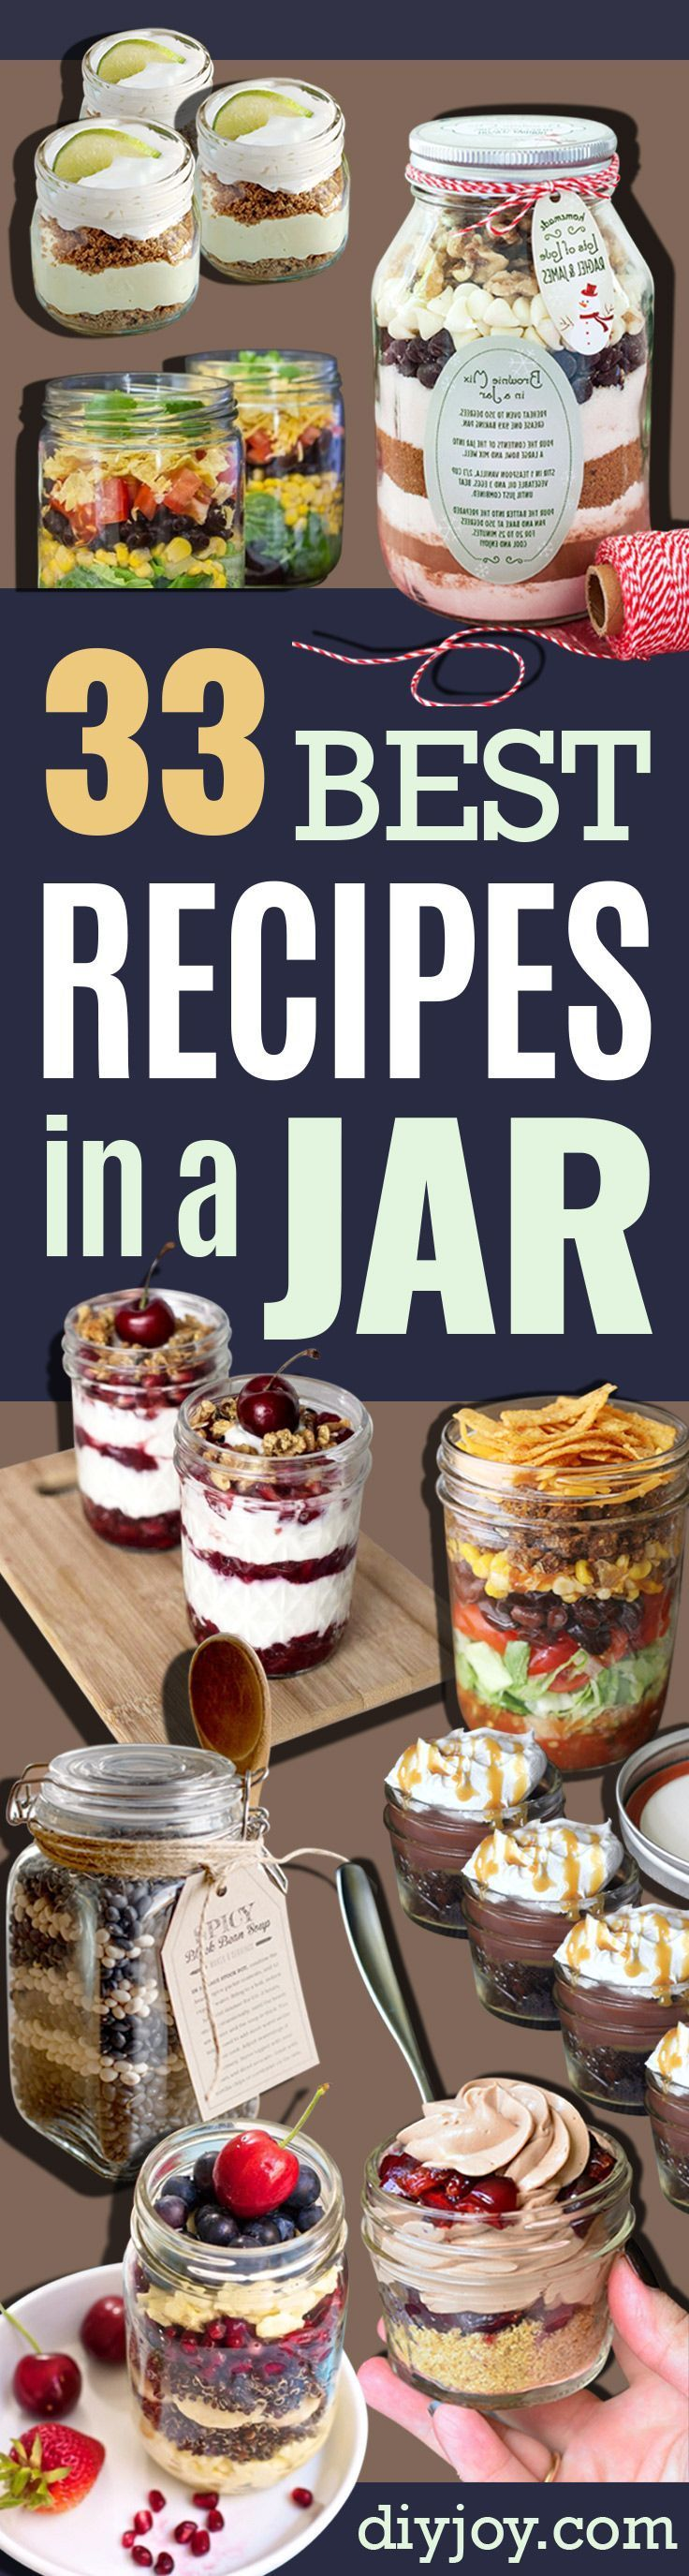 Best Recipes in A Jar - DIY Mason Jar Gifts, Cookie Recipes and Desserts, Canning Ideas, Overnight Oatmeal, How To Make Mason Jar Salad, Healthy Recipes and Printable Labels http://diyjoy.com/best-recipes-in-a-jar                                                                                                                                                                                 More